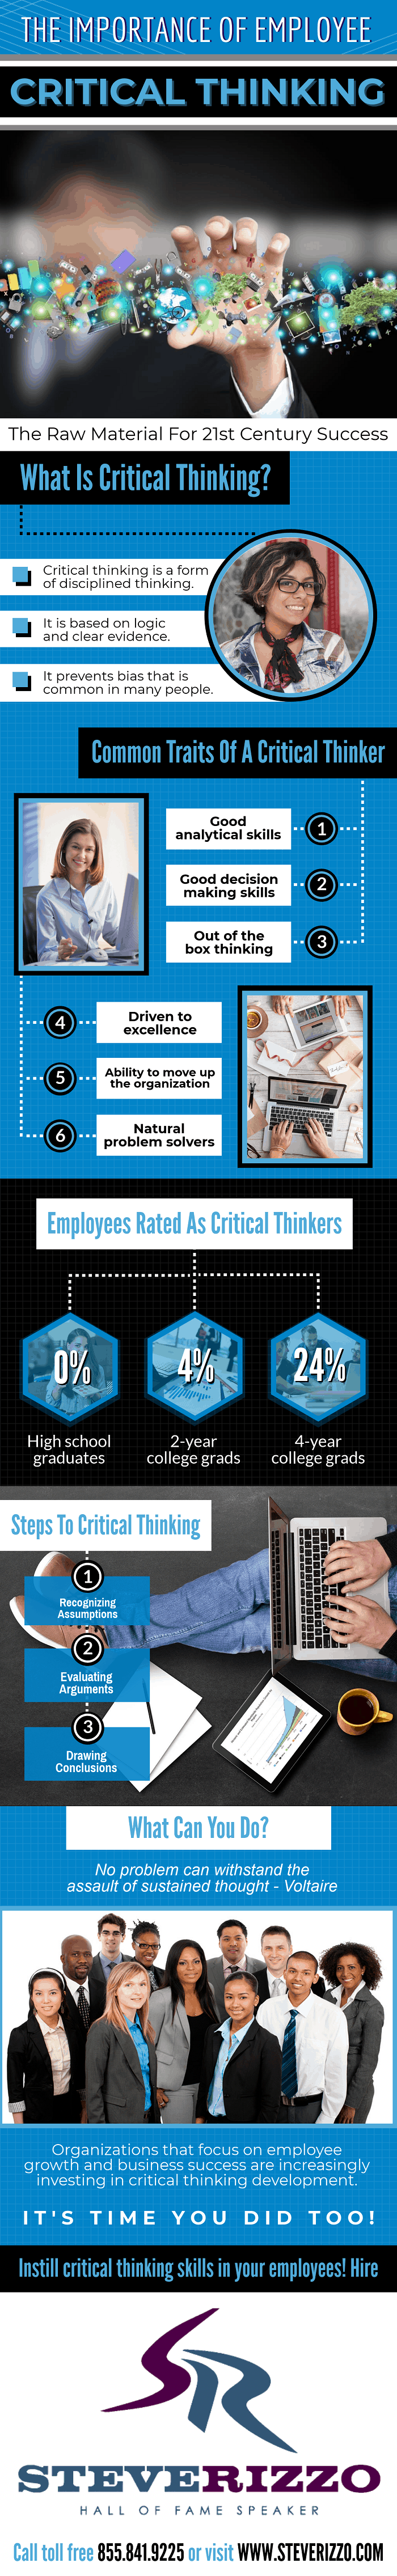 The Importance of Employee Critical Thinking